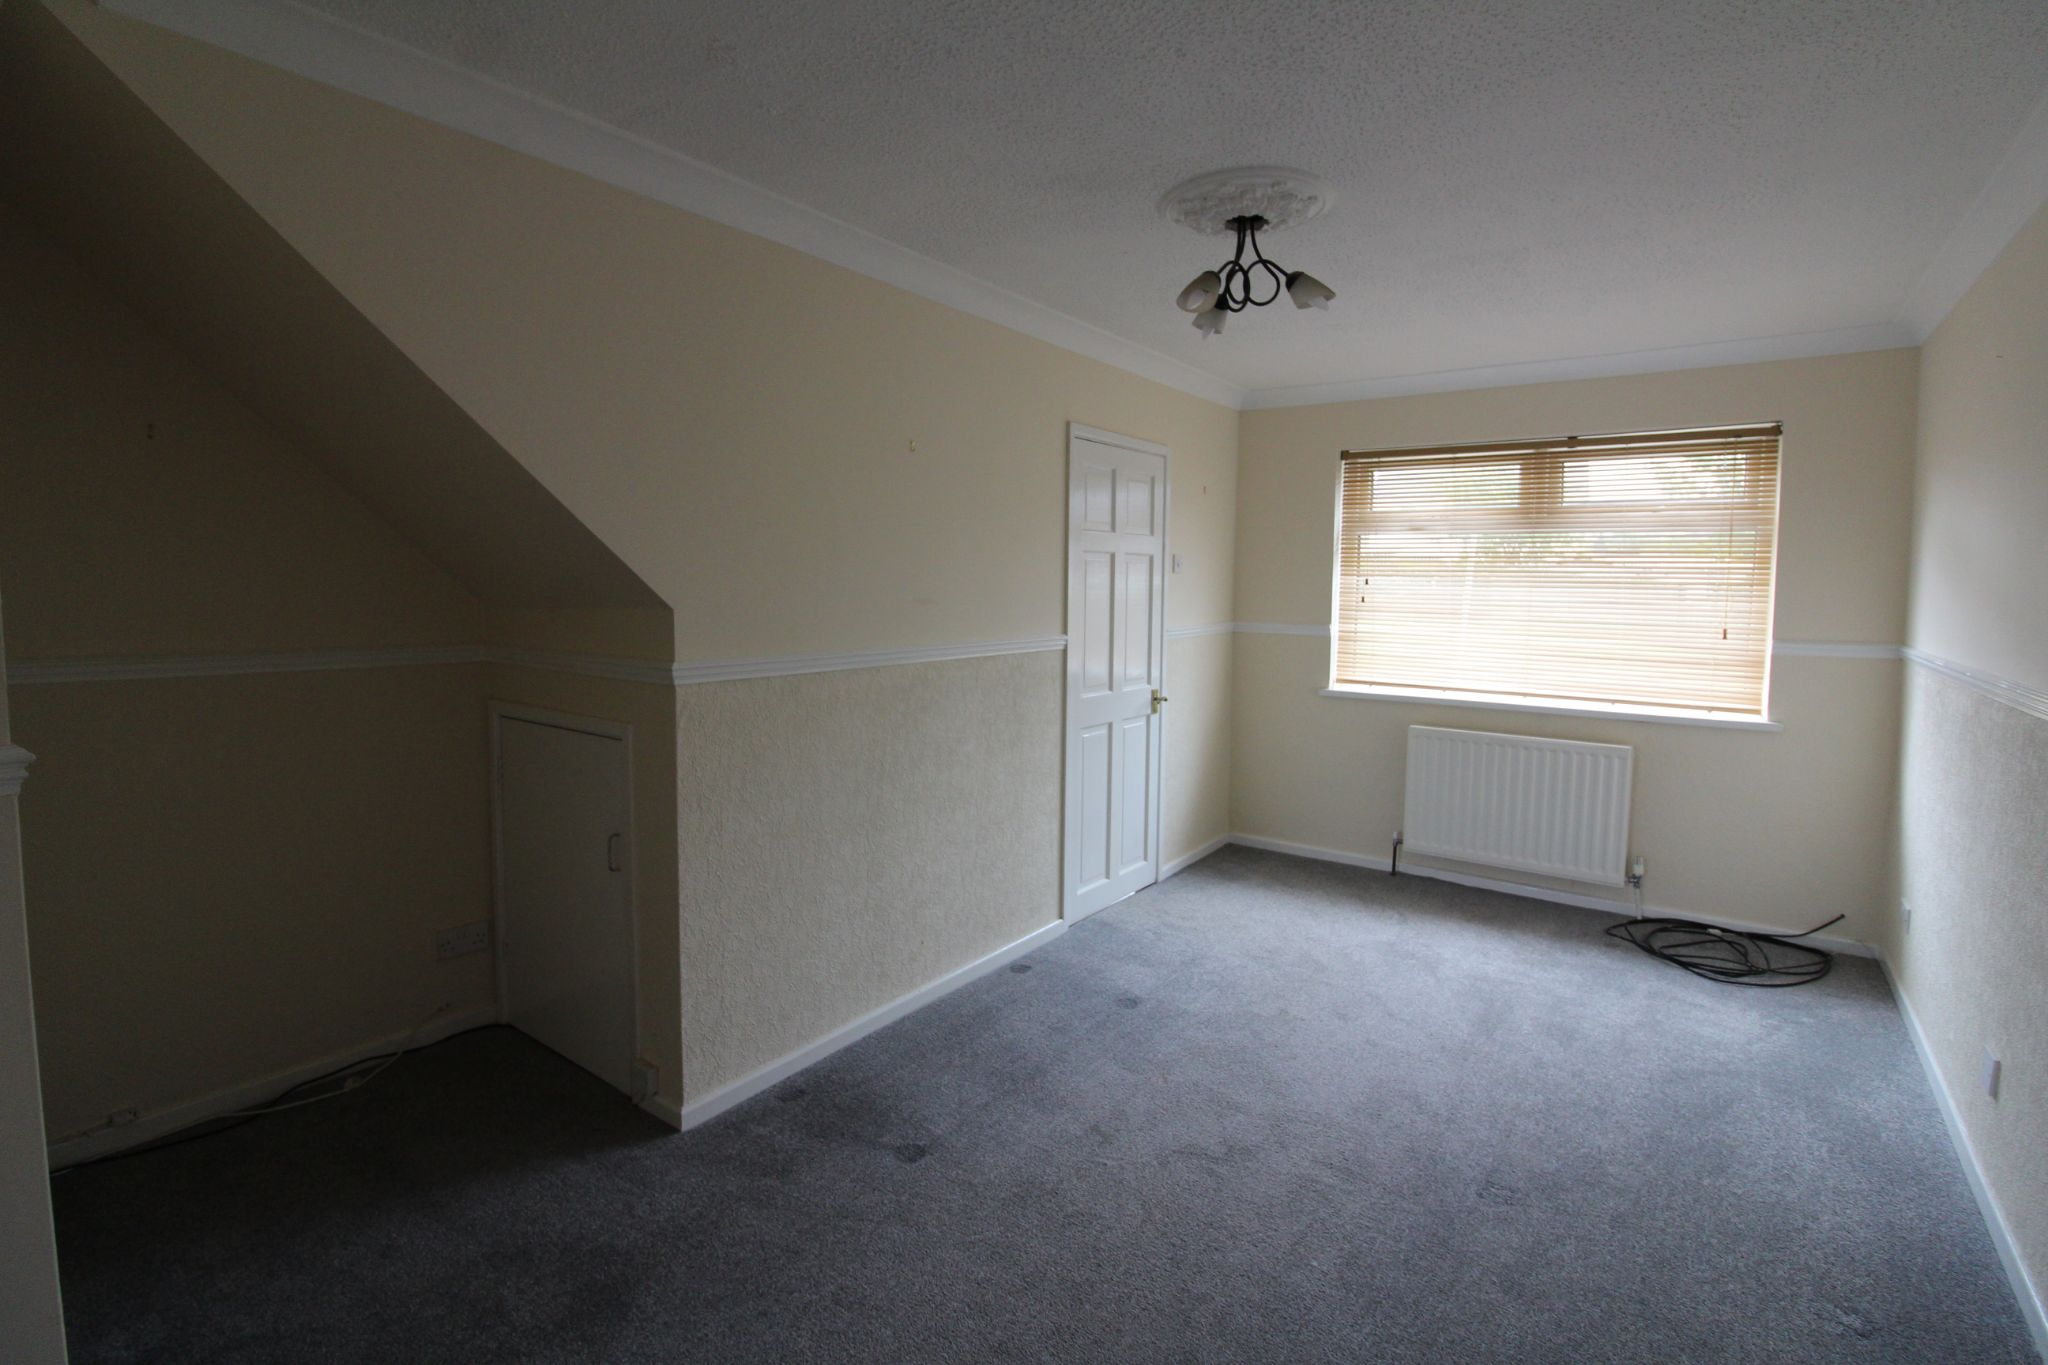 2 bedroom mid terraced house For Sale in Durham - Photograph 7.